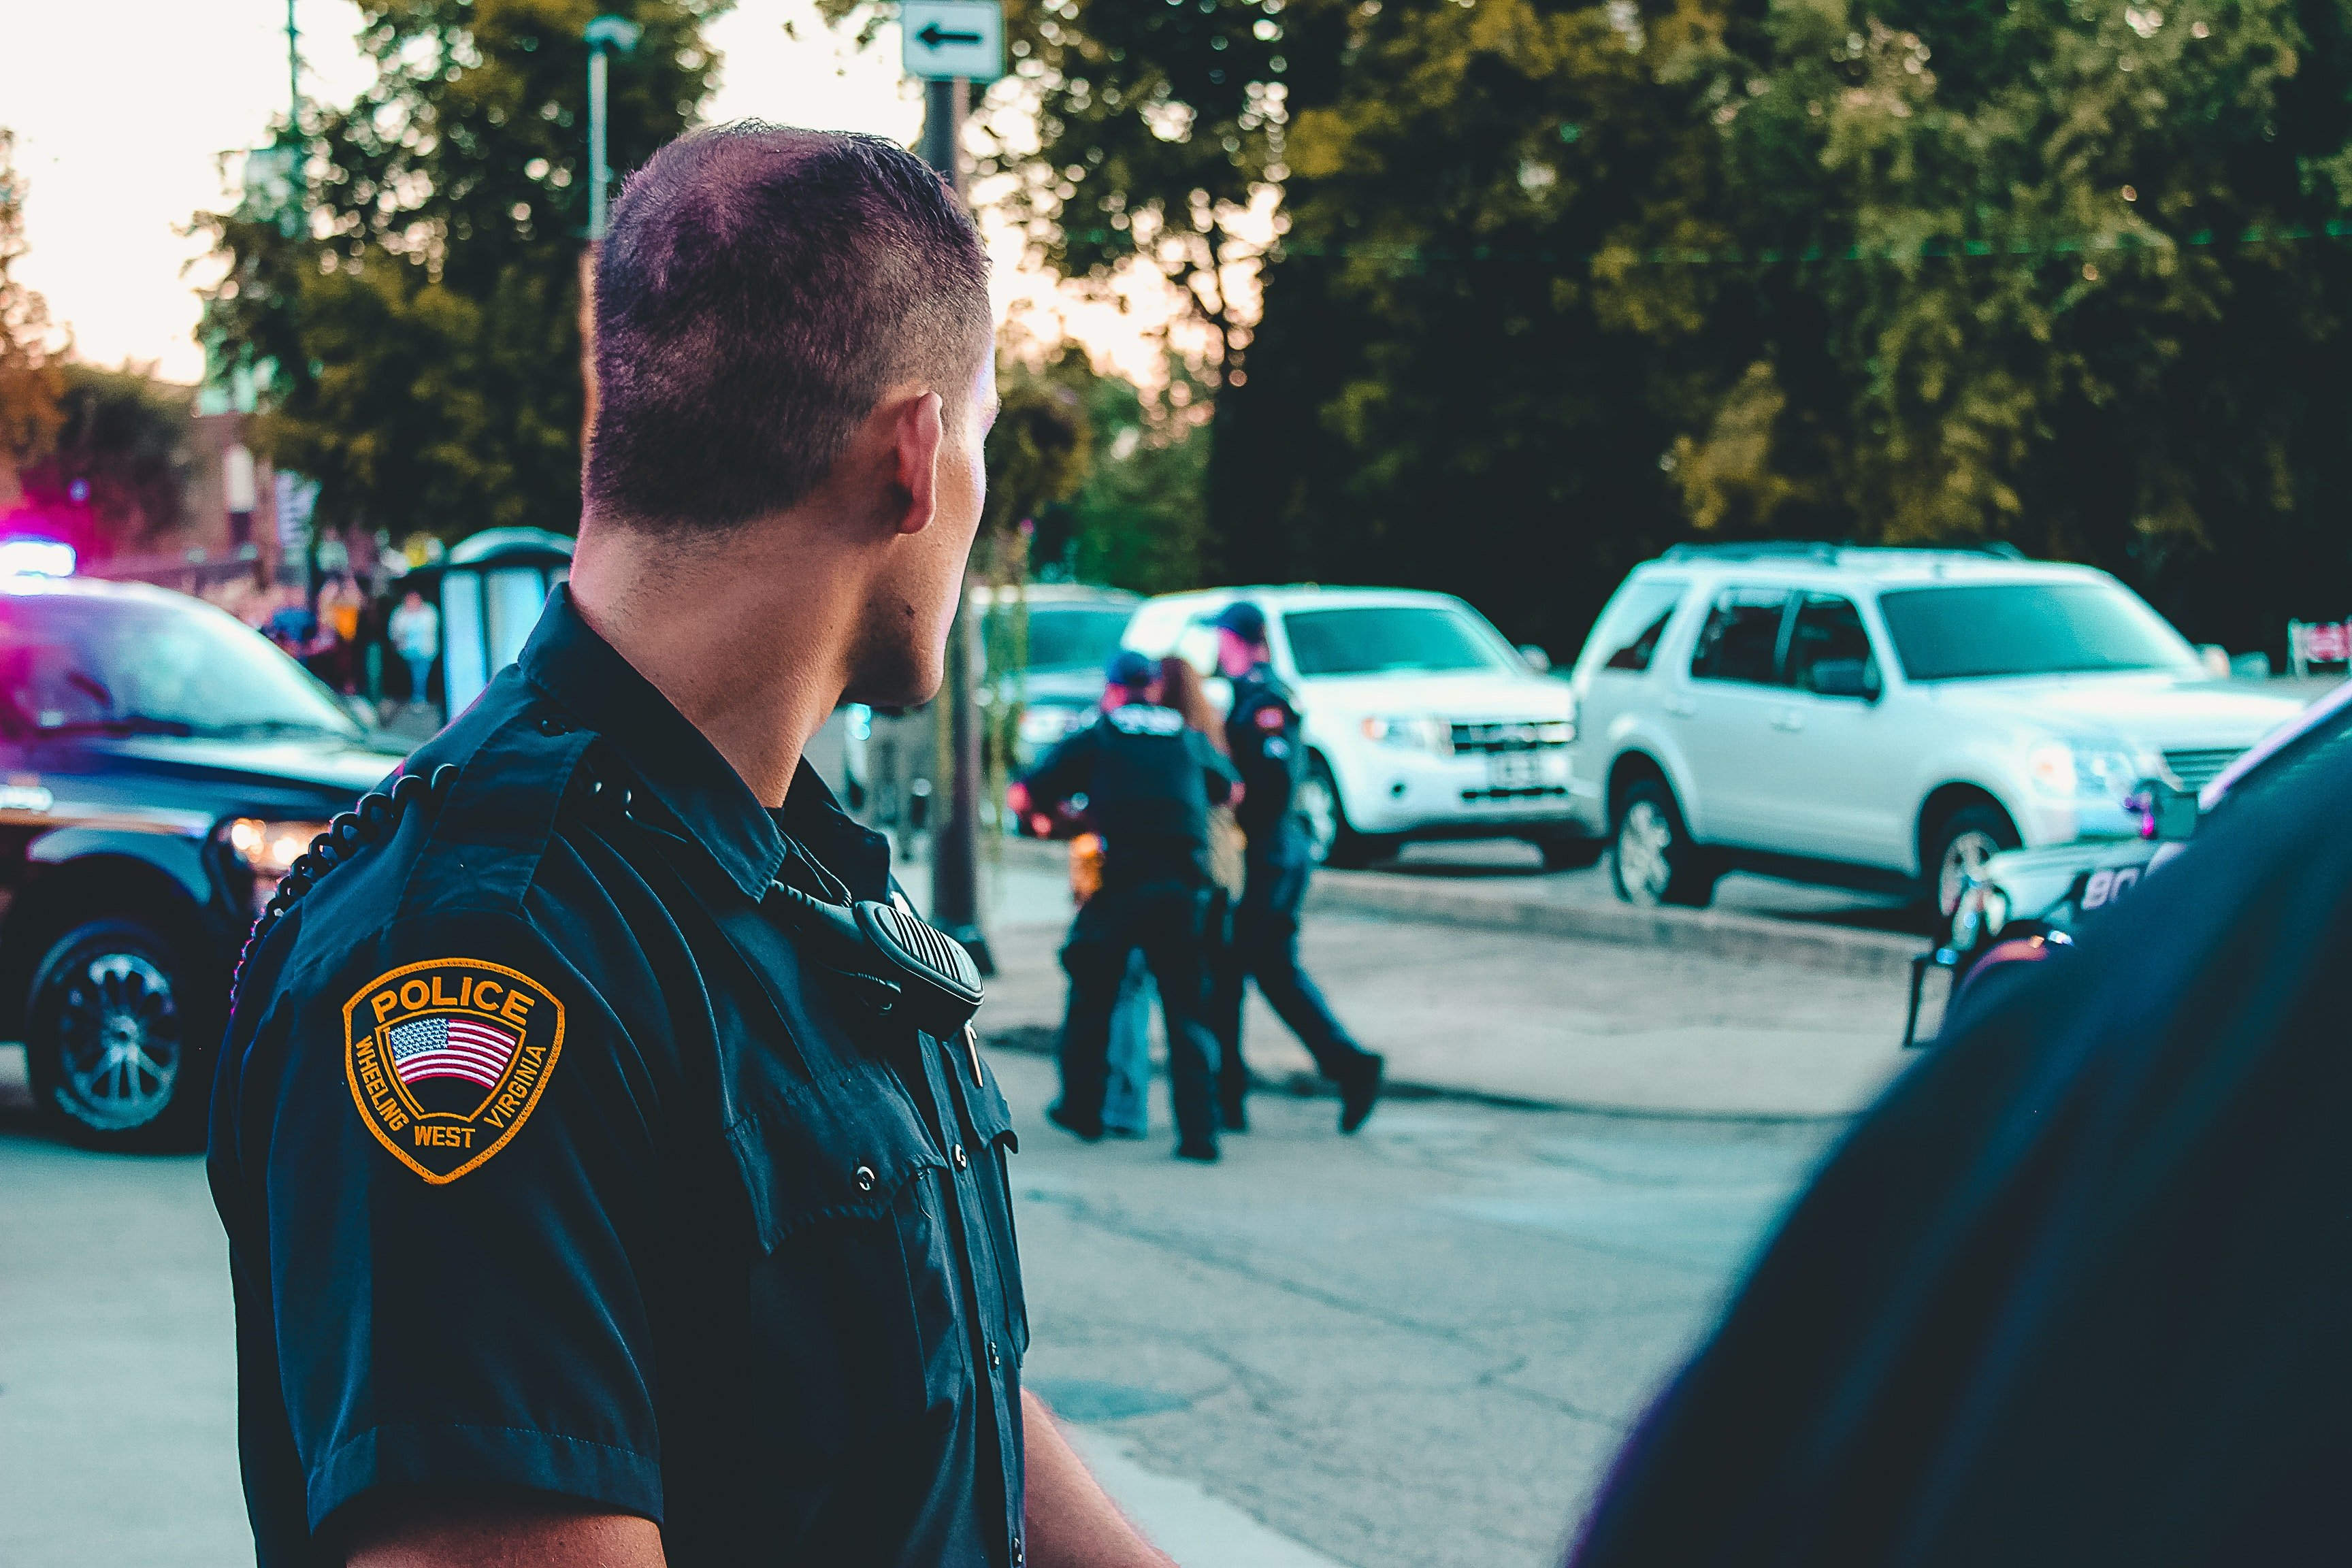 An officer looking back toward the scene behind him. | Source: Pexels